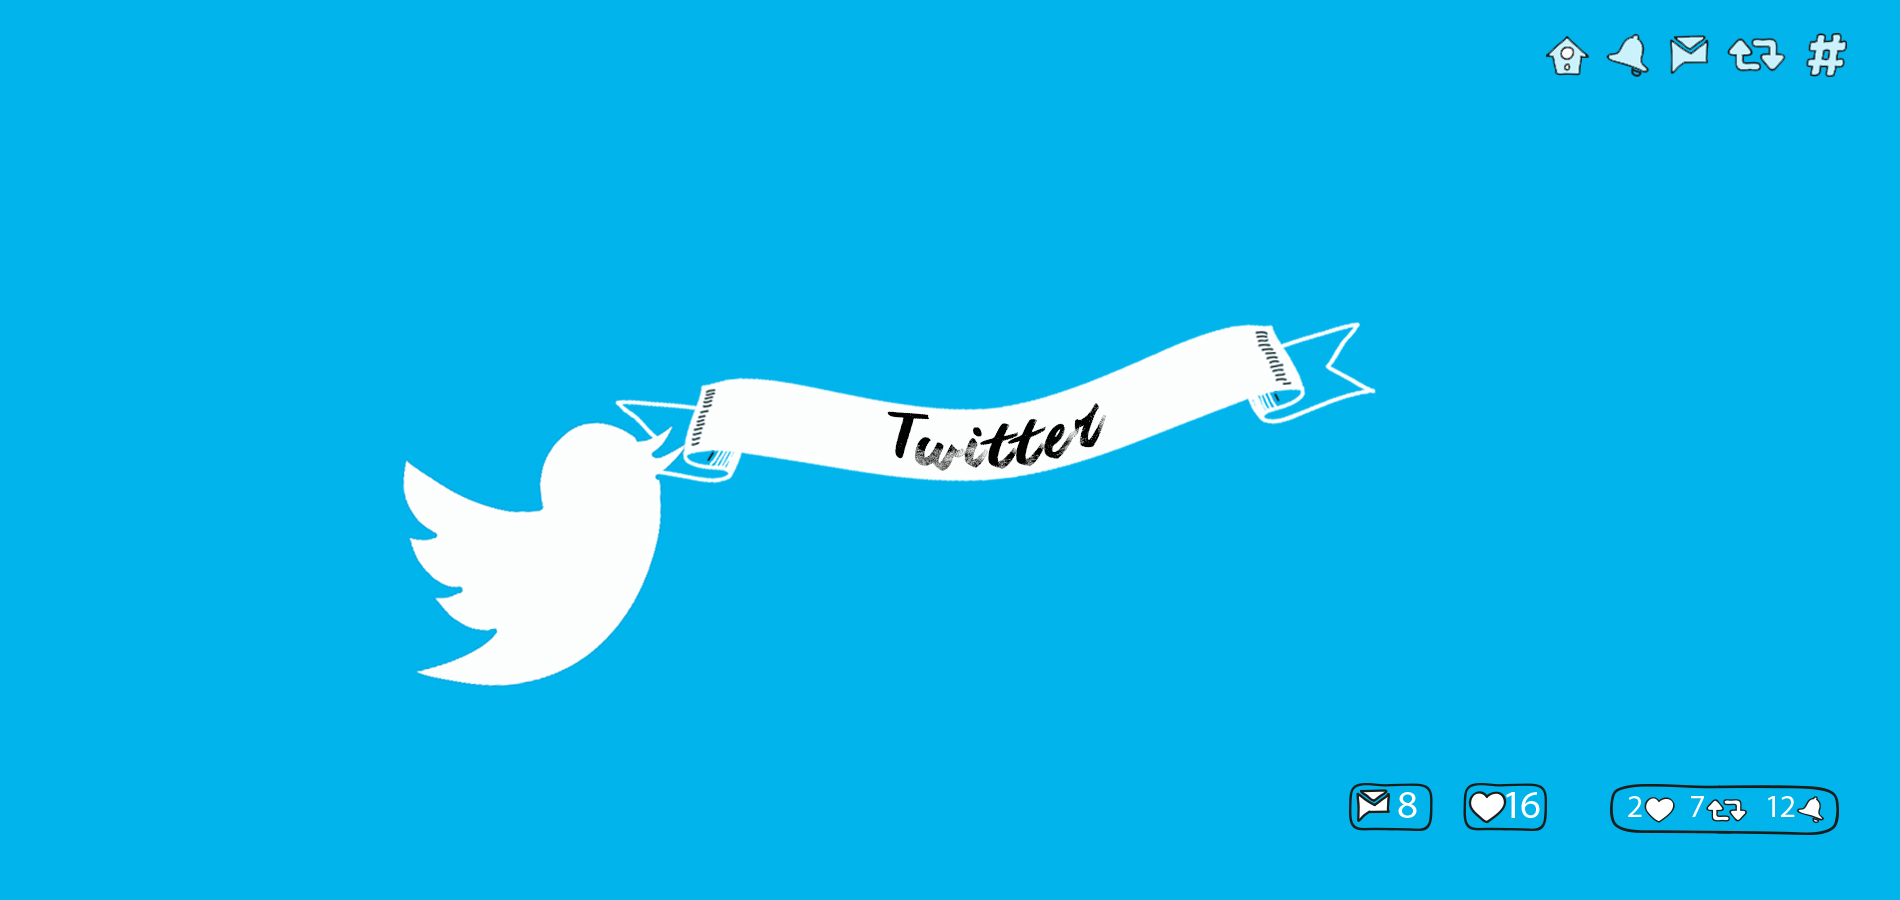 5 Best Ways To Amplify Your Business Through Twitter